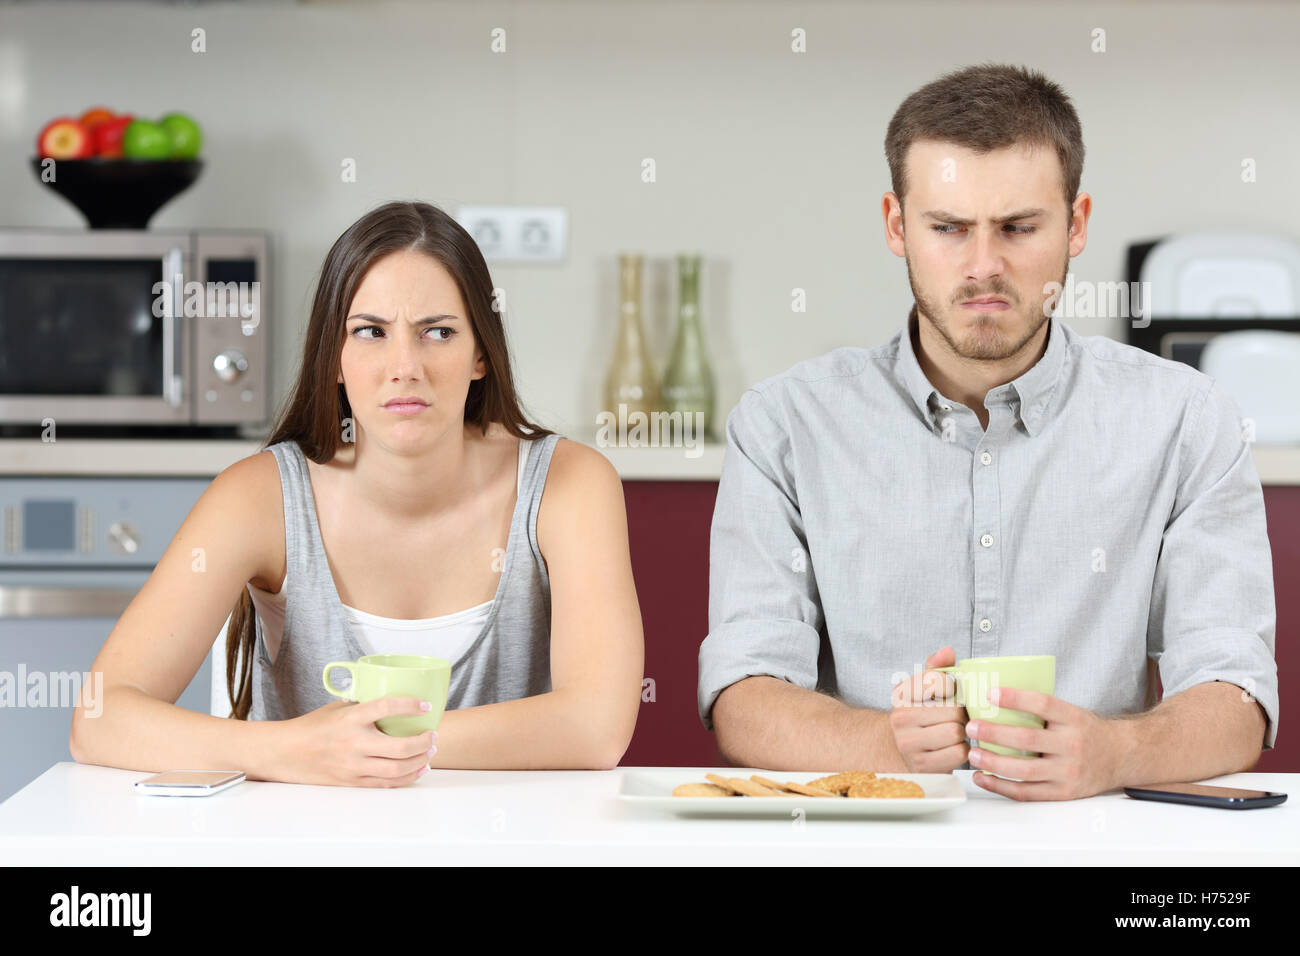 Front view of an angry couple looking each other sideways after argument in the kitchen during breakfast at home - Stock Image